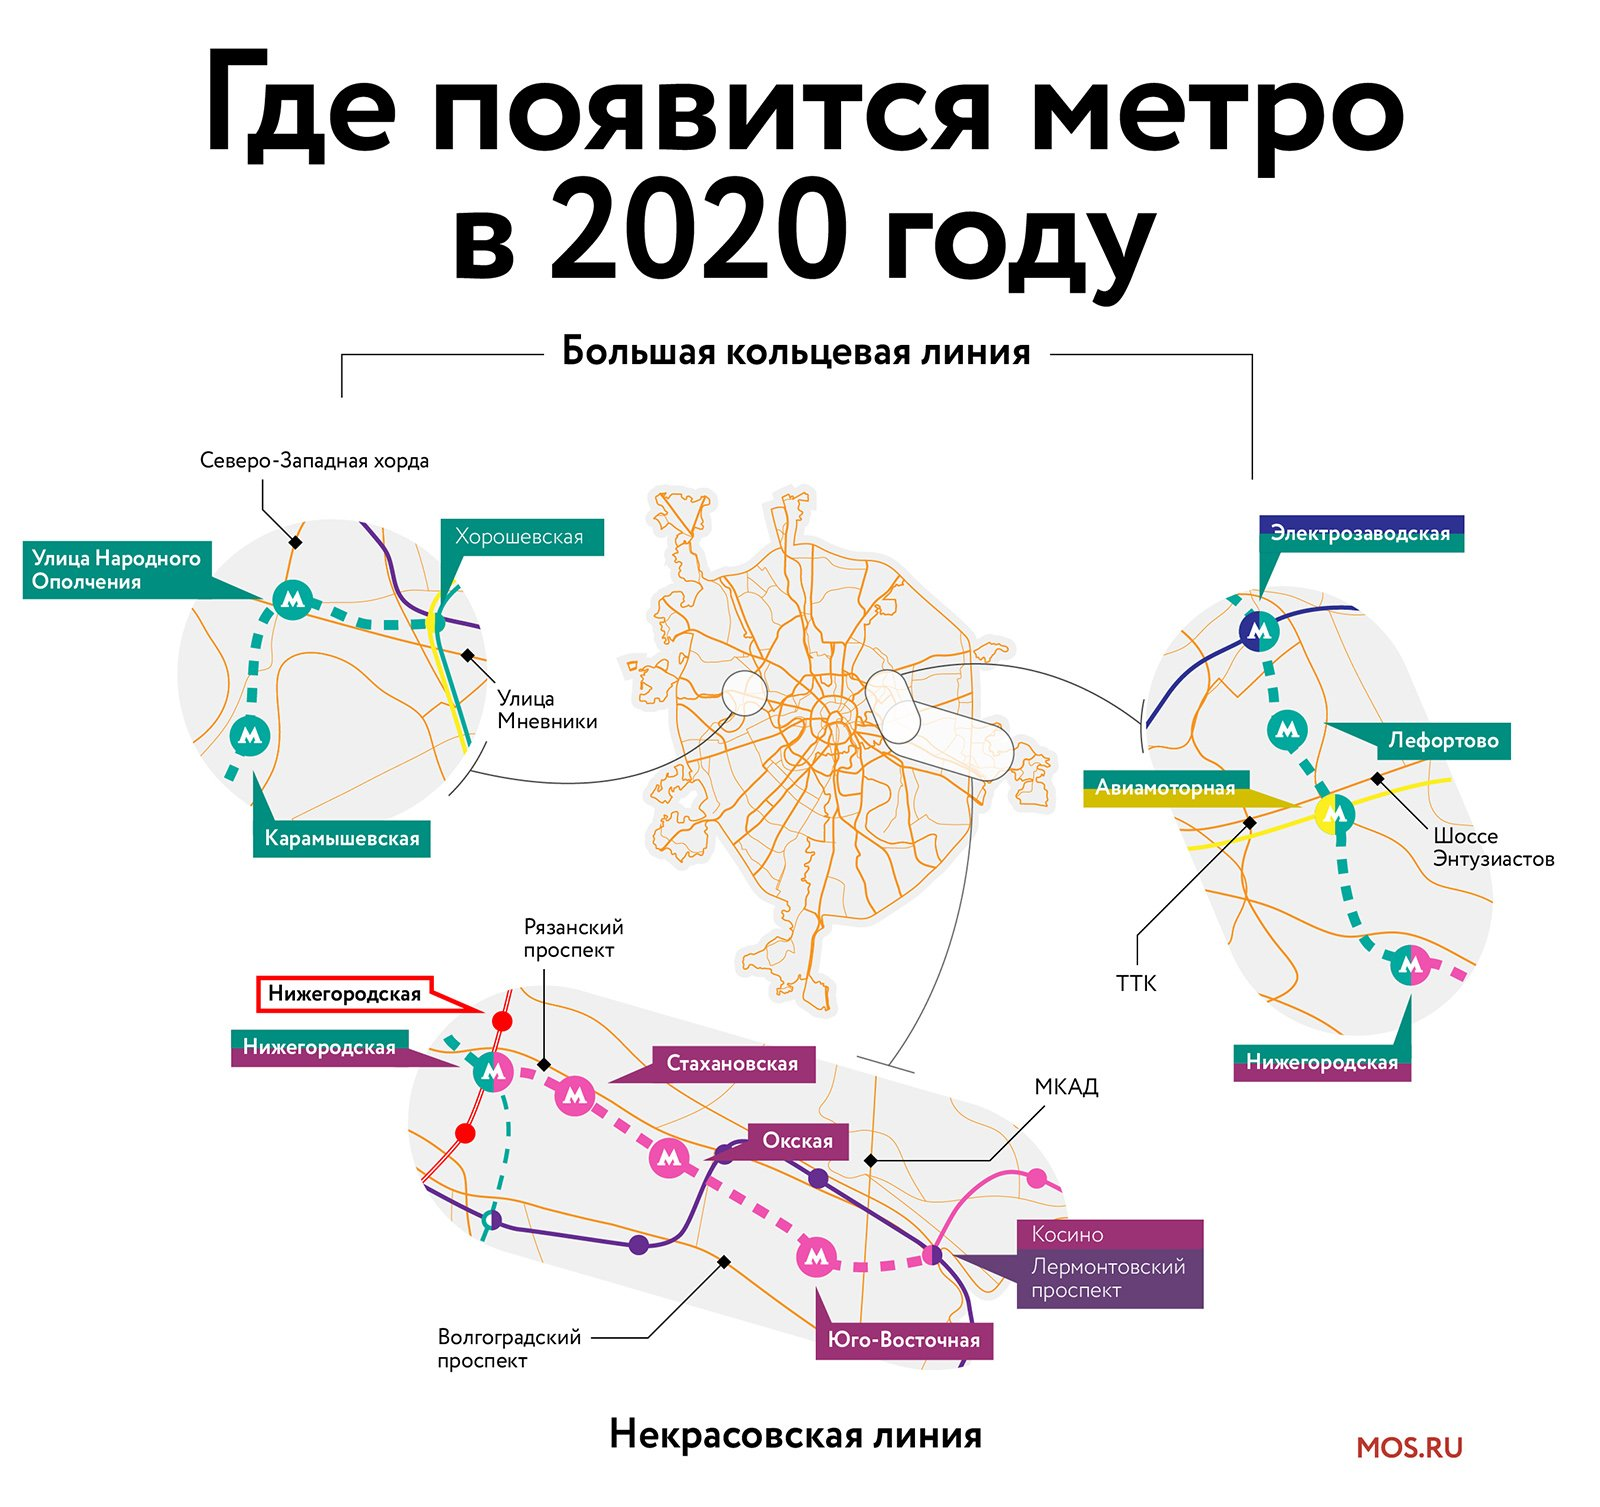 Moscow Metro Planing 2020 ©Mos.RU, 2019